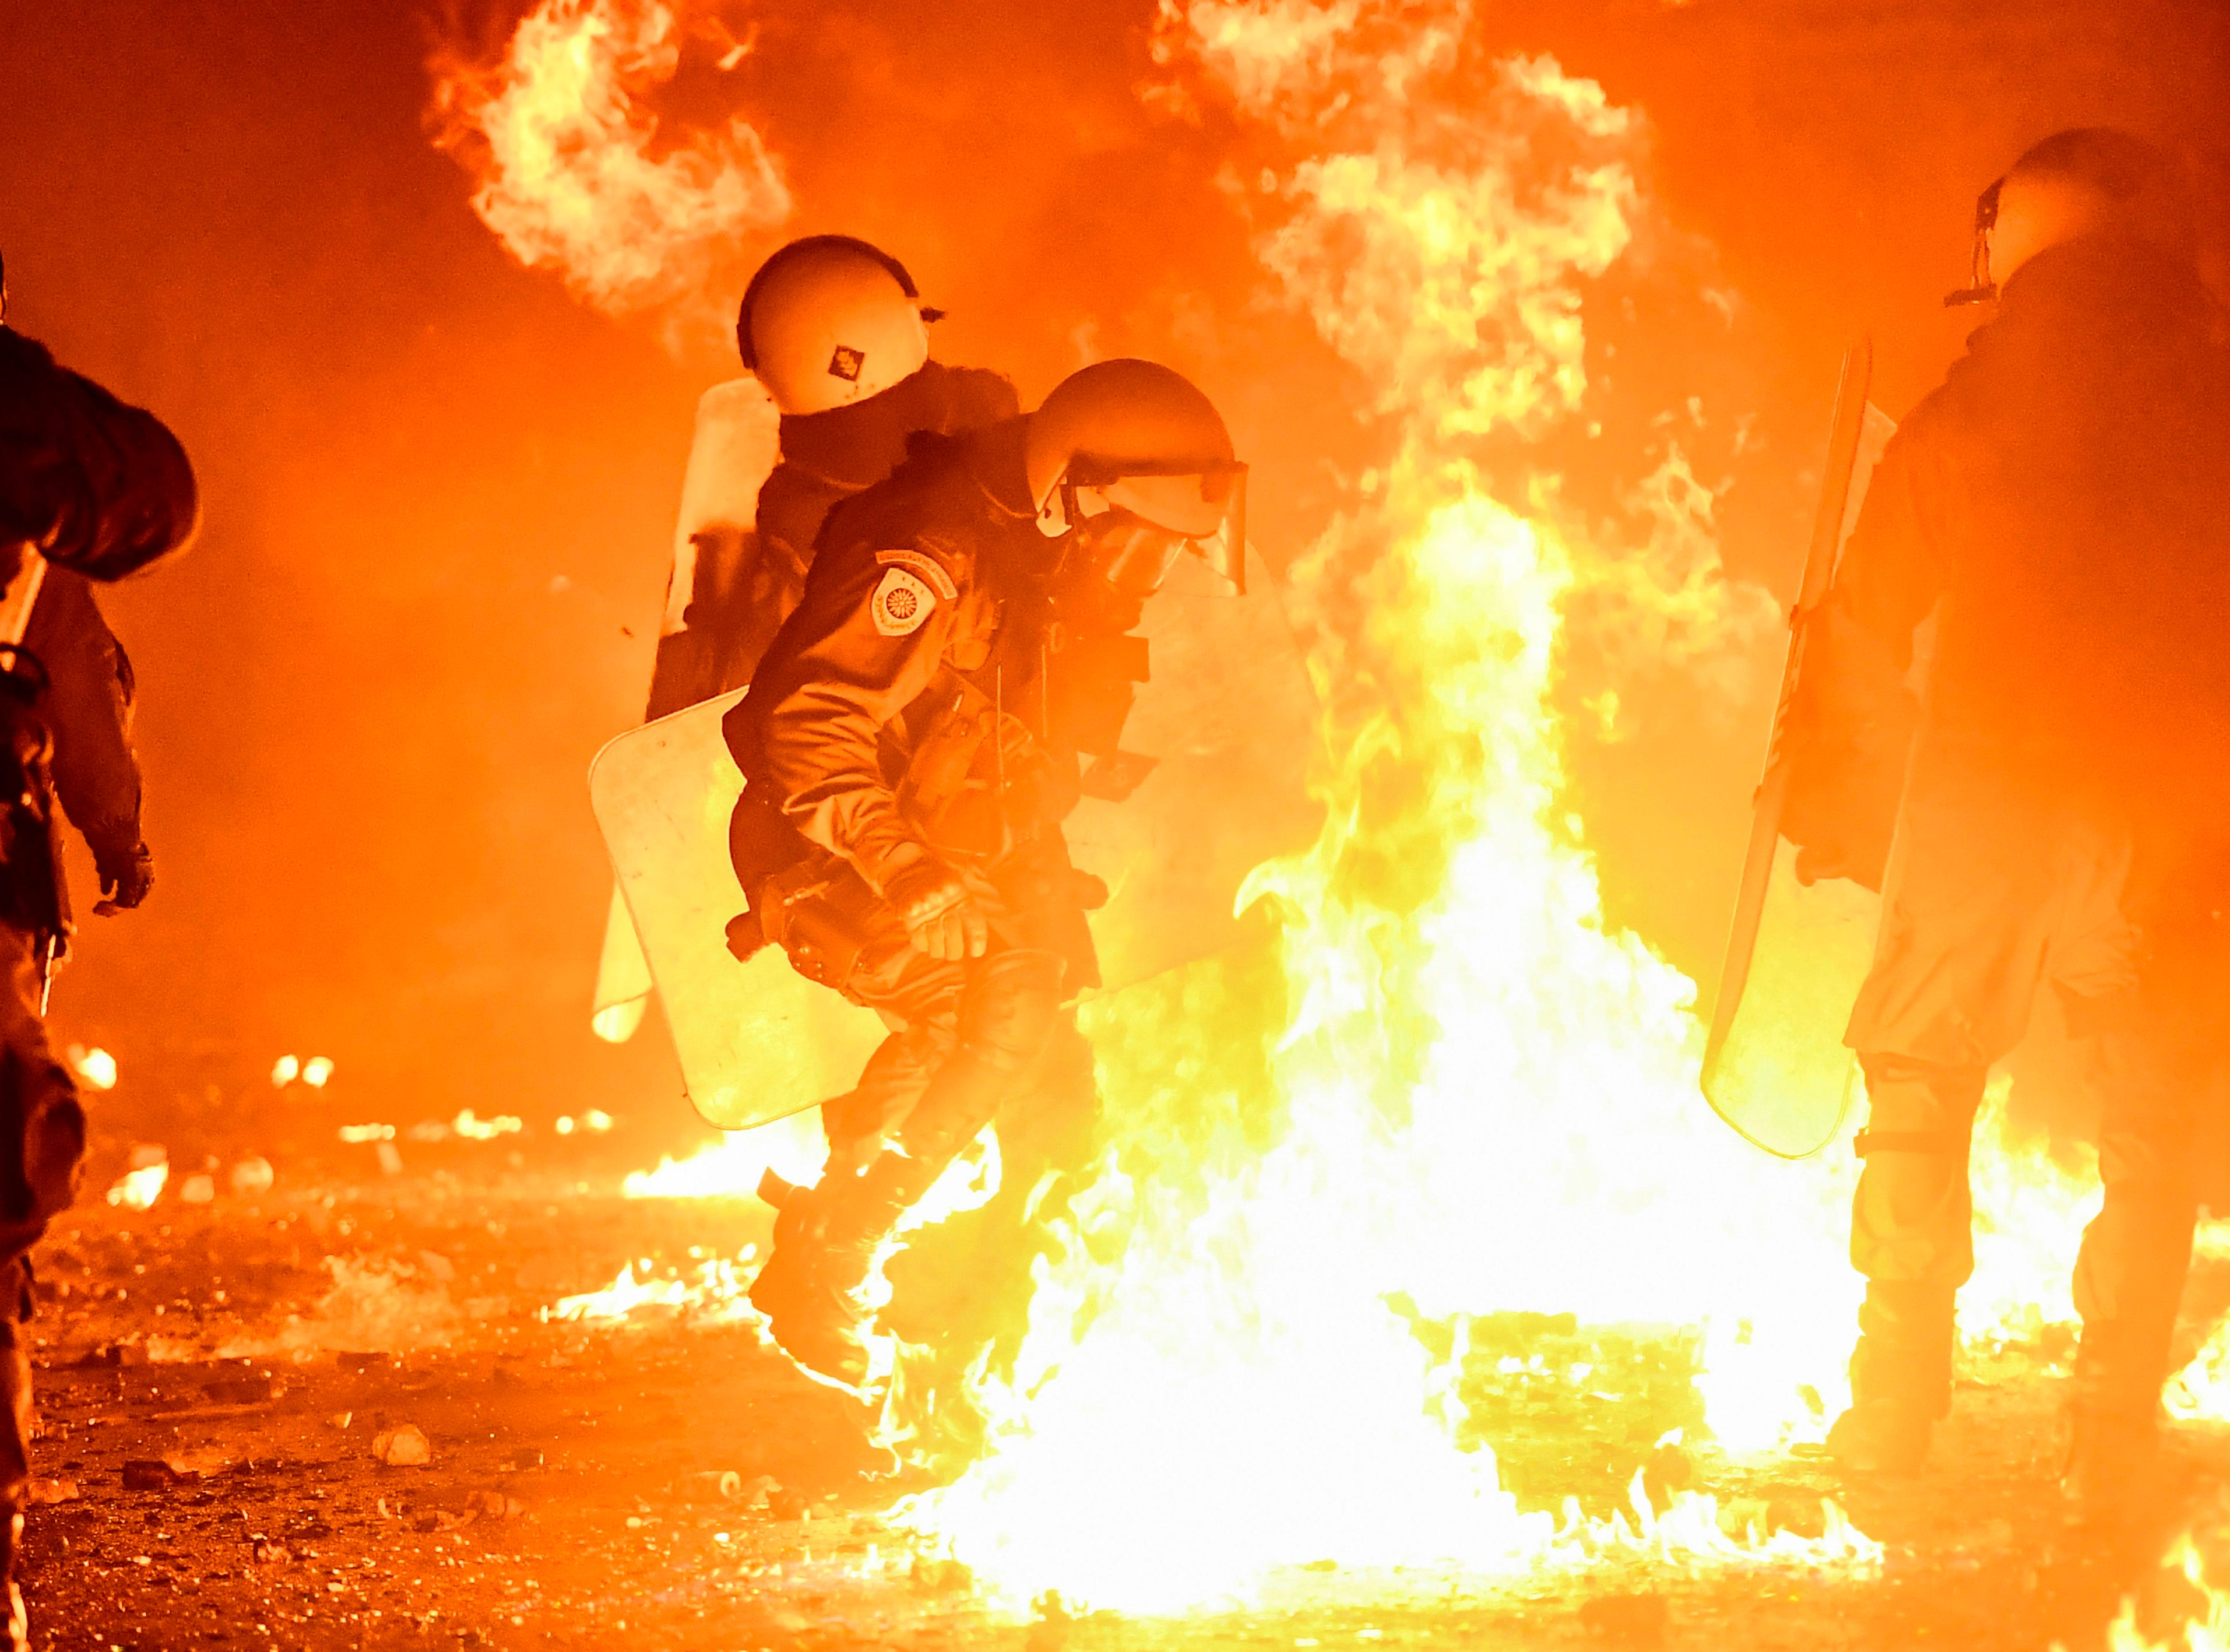 Flames from petrol bombs burn after exploding close to anti-riot police officers during a demonstration in downtown Athens on Dec. 6, 2018 to commemorate the 10th anniversary of the fatal shooting of a teenager which sparked major riots in Greece in 2008.